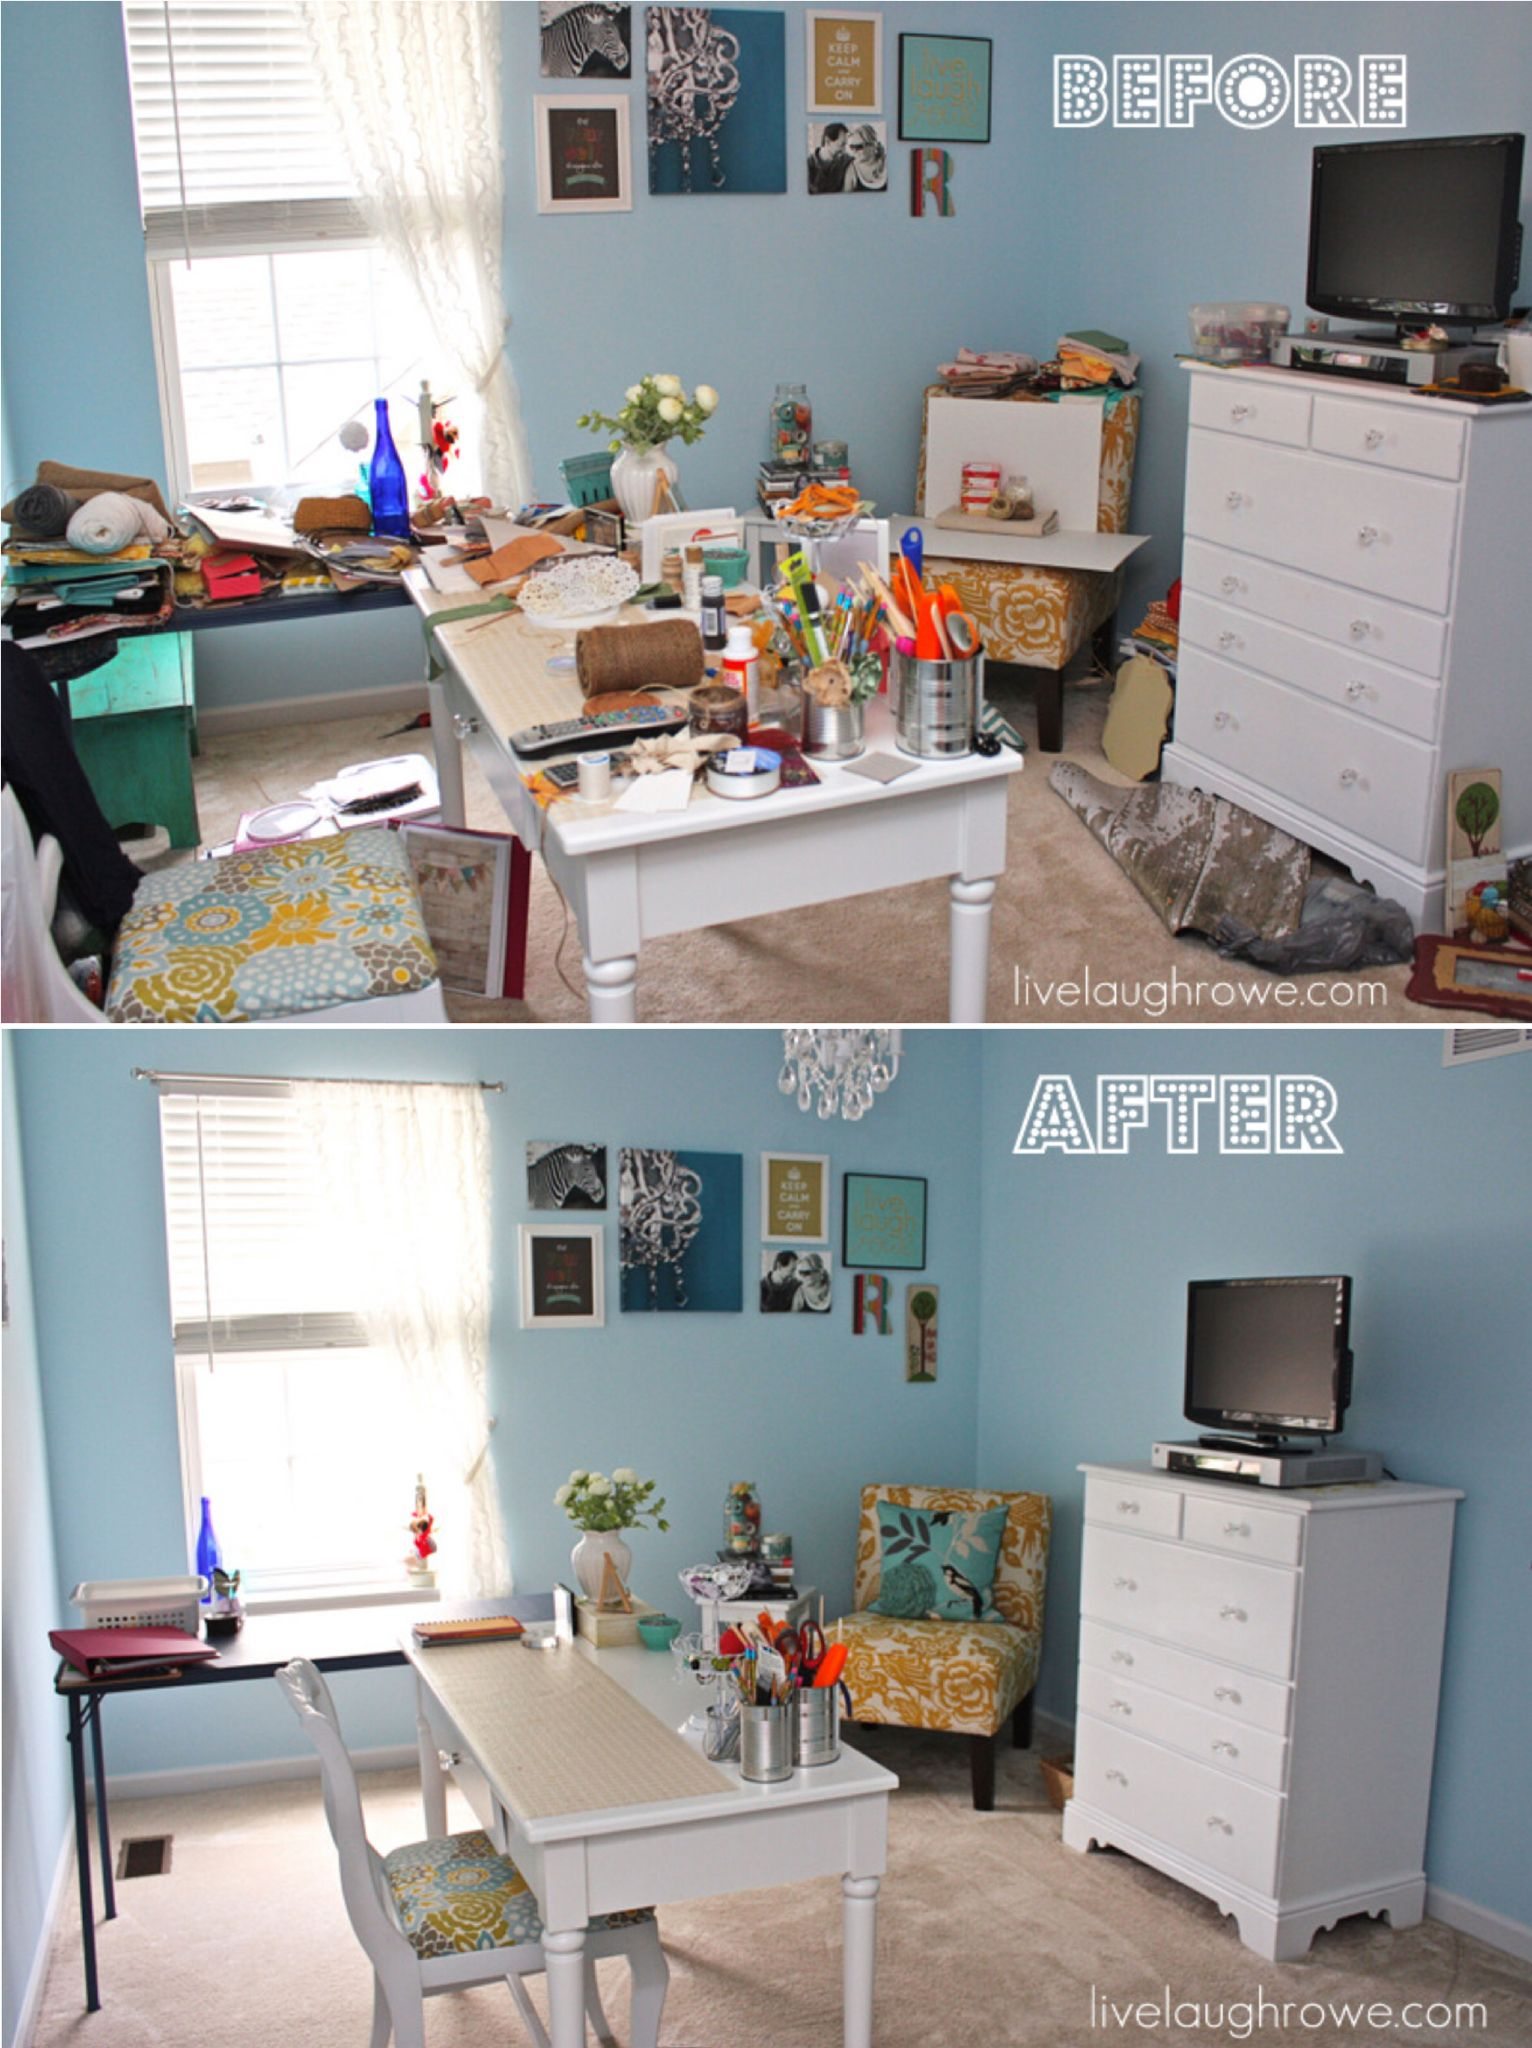 Messy Craft Room Via Live Laugh Rowe Messy Crafts Craft